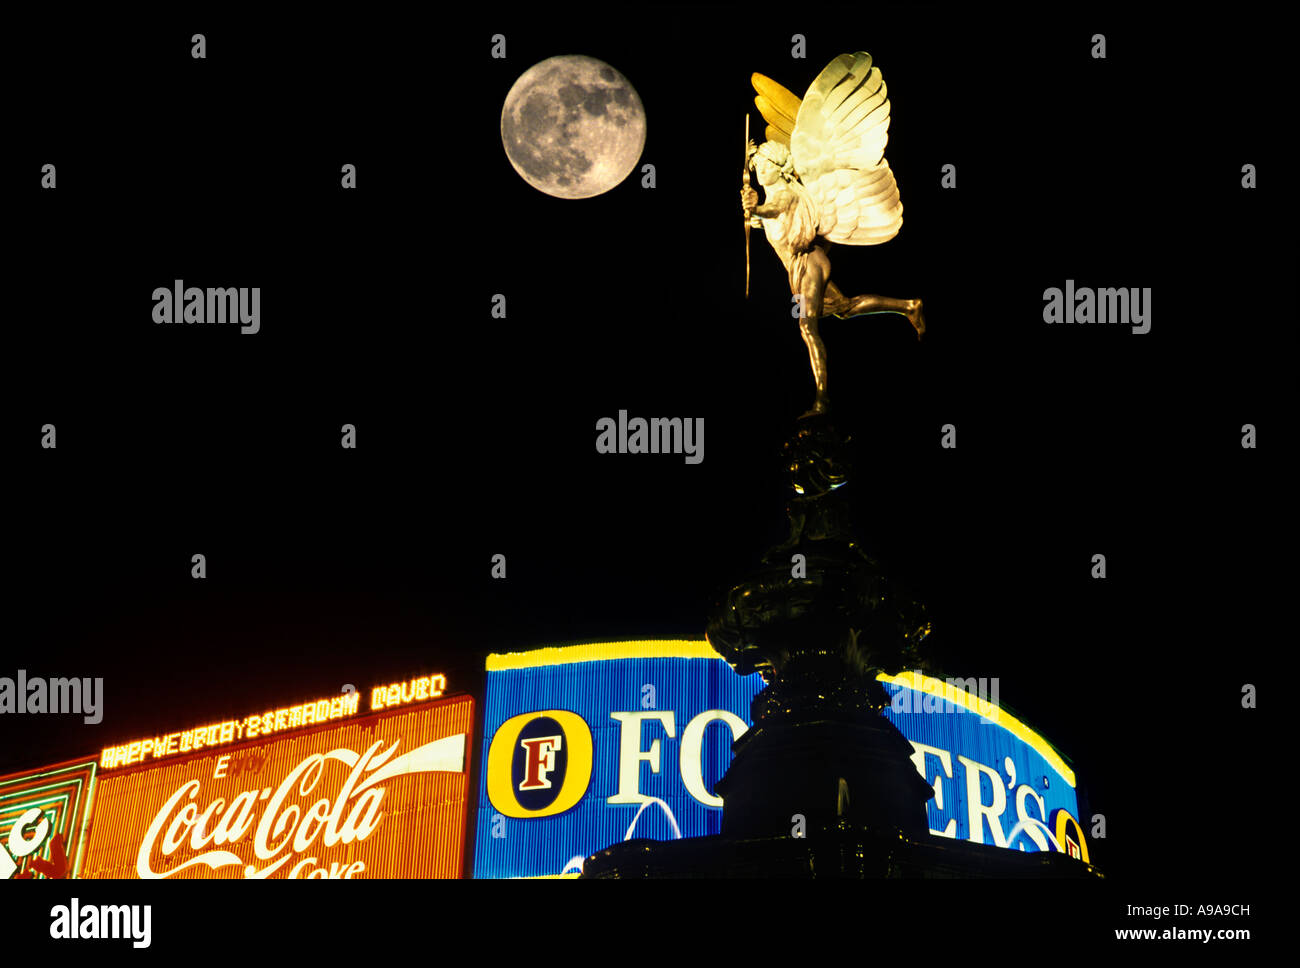 EROS STATUE PICCADILLY CIRCUS WEST END  LONDON ENGLAND UK - Stock Image